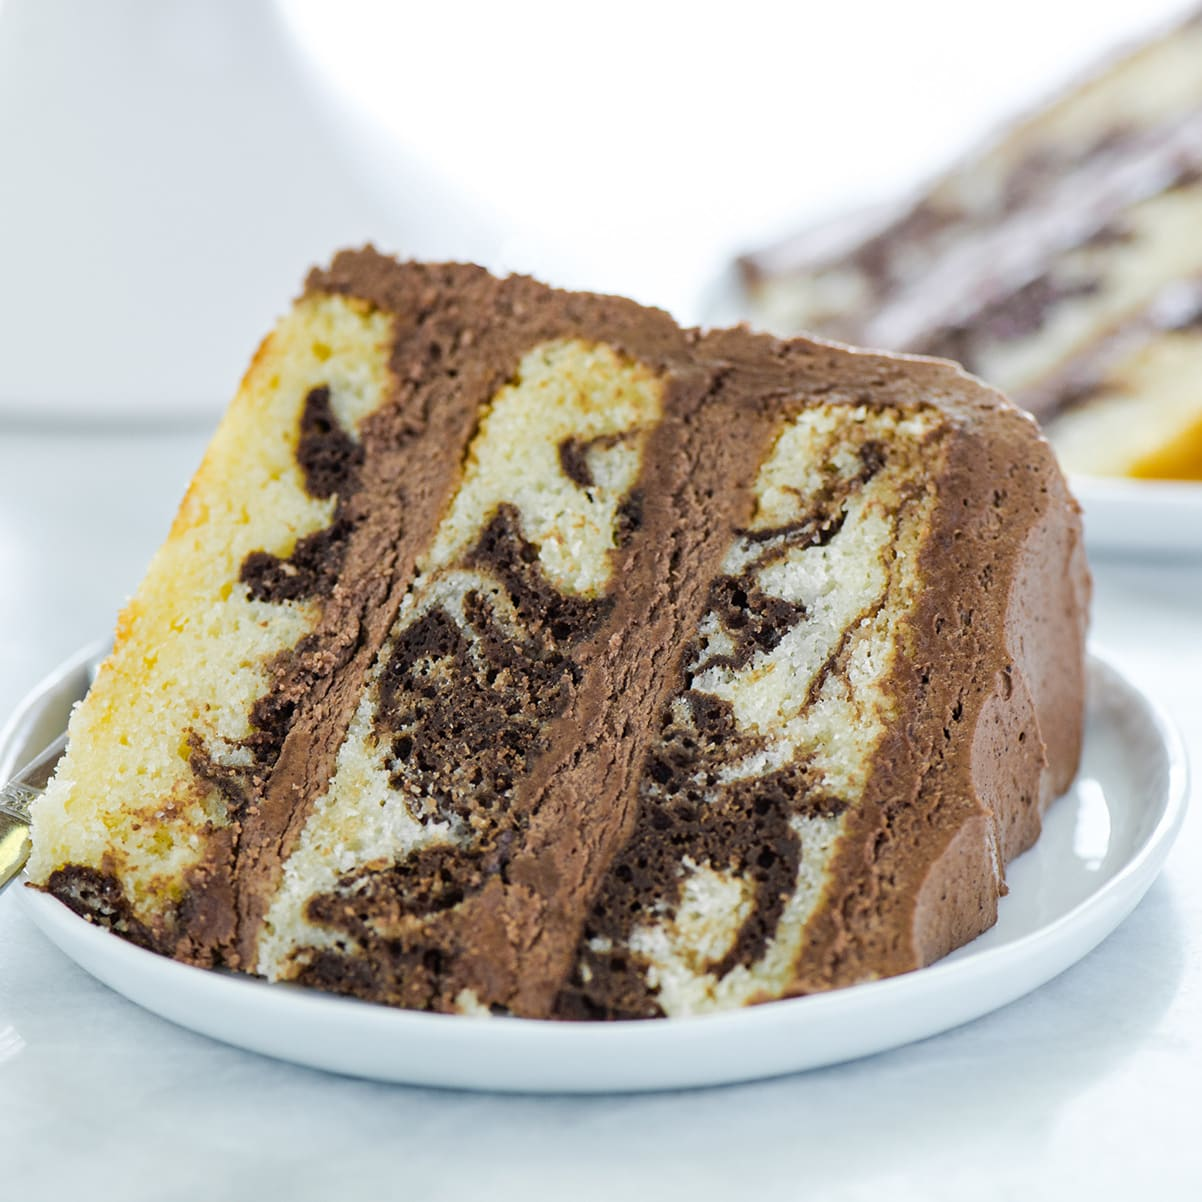 Phenomenal Gluten Free Marble Cake Recipe Food Fanatic Funny Birthday Cards Online Barepcheapnameinfo